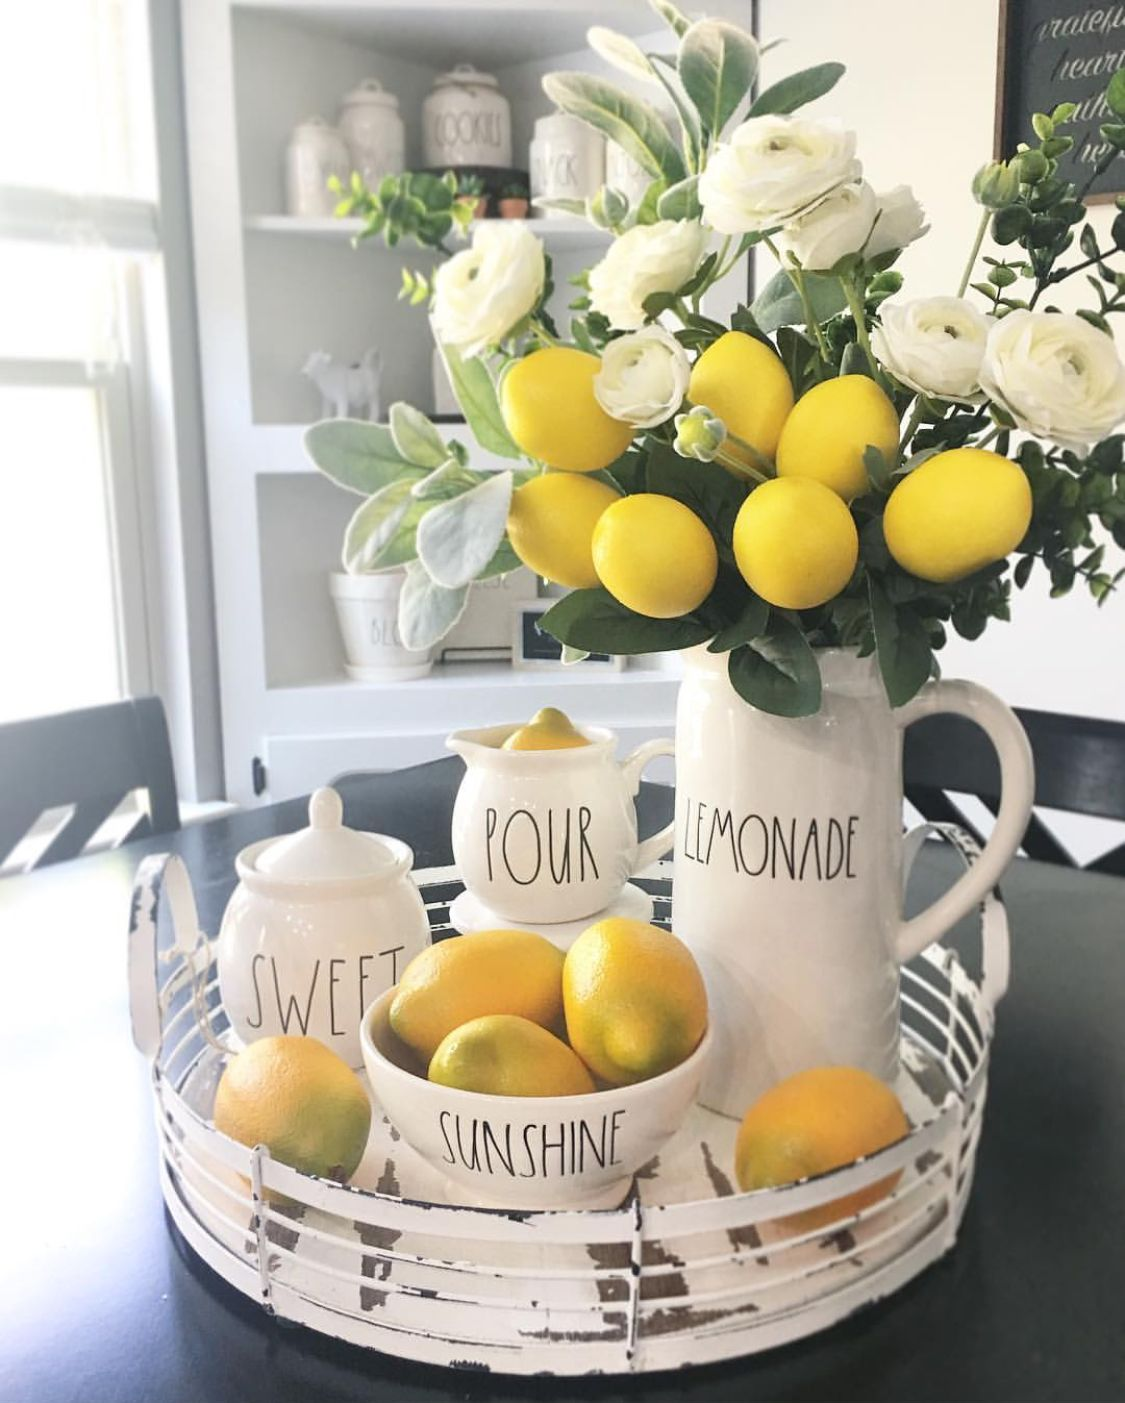 Rae Dunn lemons  Lemon kitchen decor, Lemon decor, Summer home decor